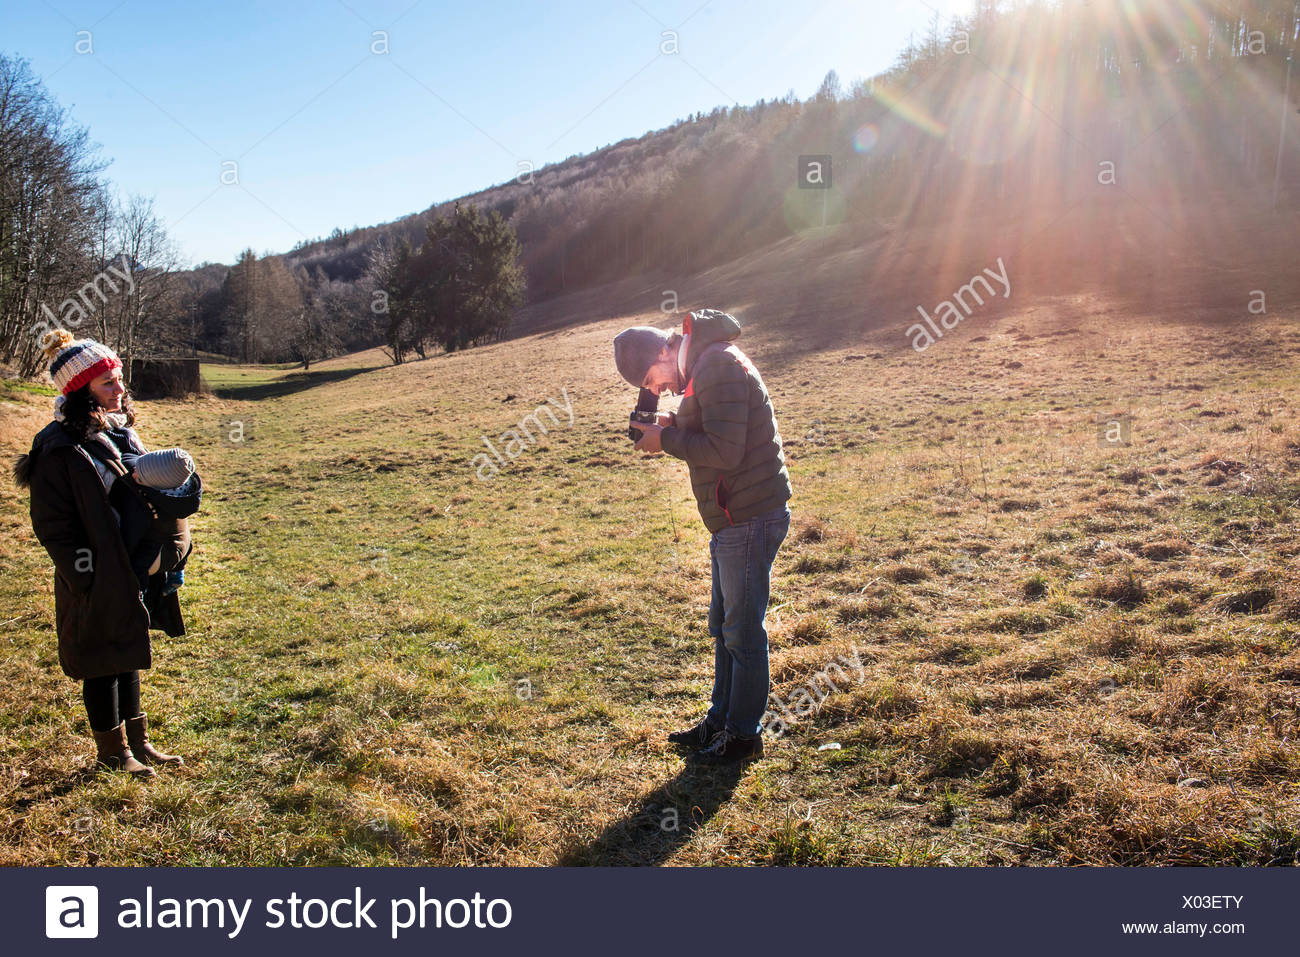 Man taking photograph of woman and baby boy, using medium format camera, in rural setting, Italy - Stock Image